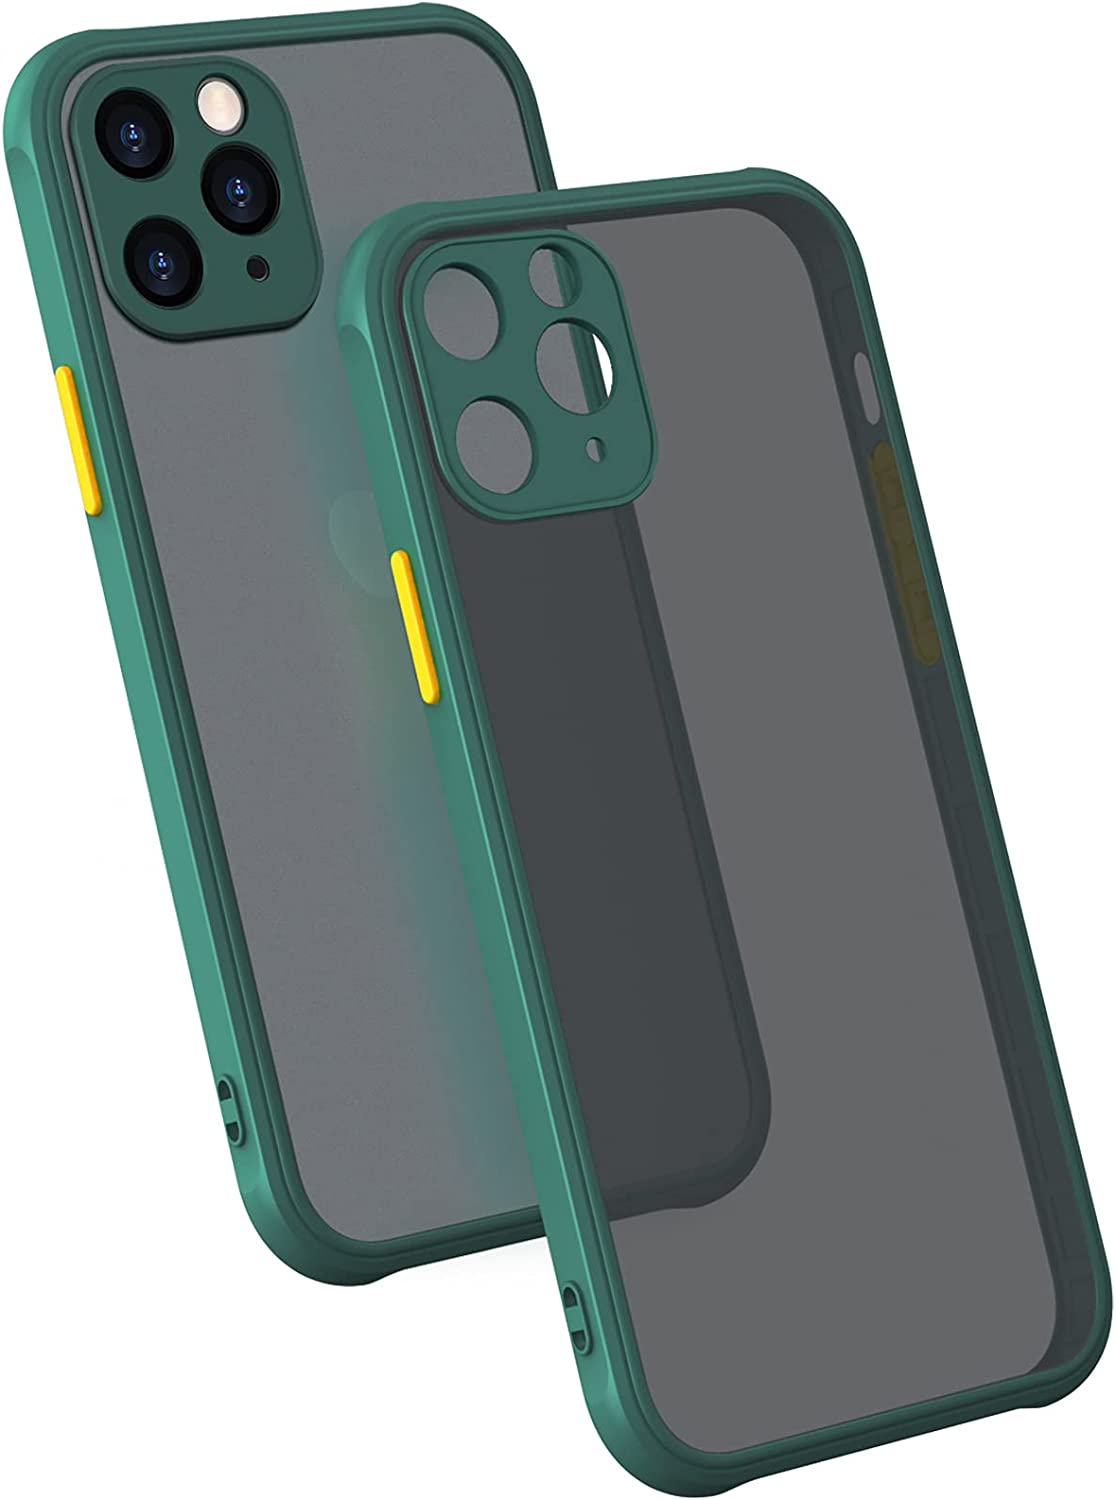 MONGKEYA iPhone 11 Pro Max Case, 6.5 inch, Translucent Matte Hard PC Back with Soft Silicone Edge, Slim Shockproof, Drop Protective Phone case for iPhone 11 Pro Max, Midnight Green